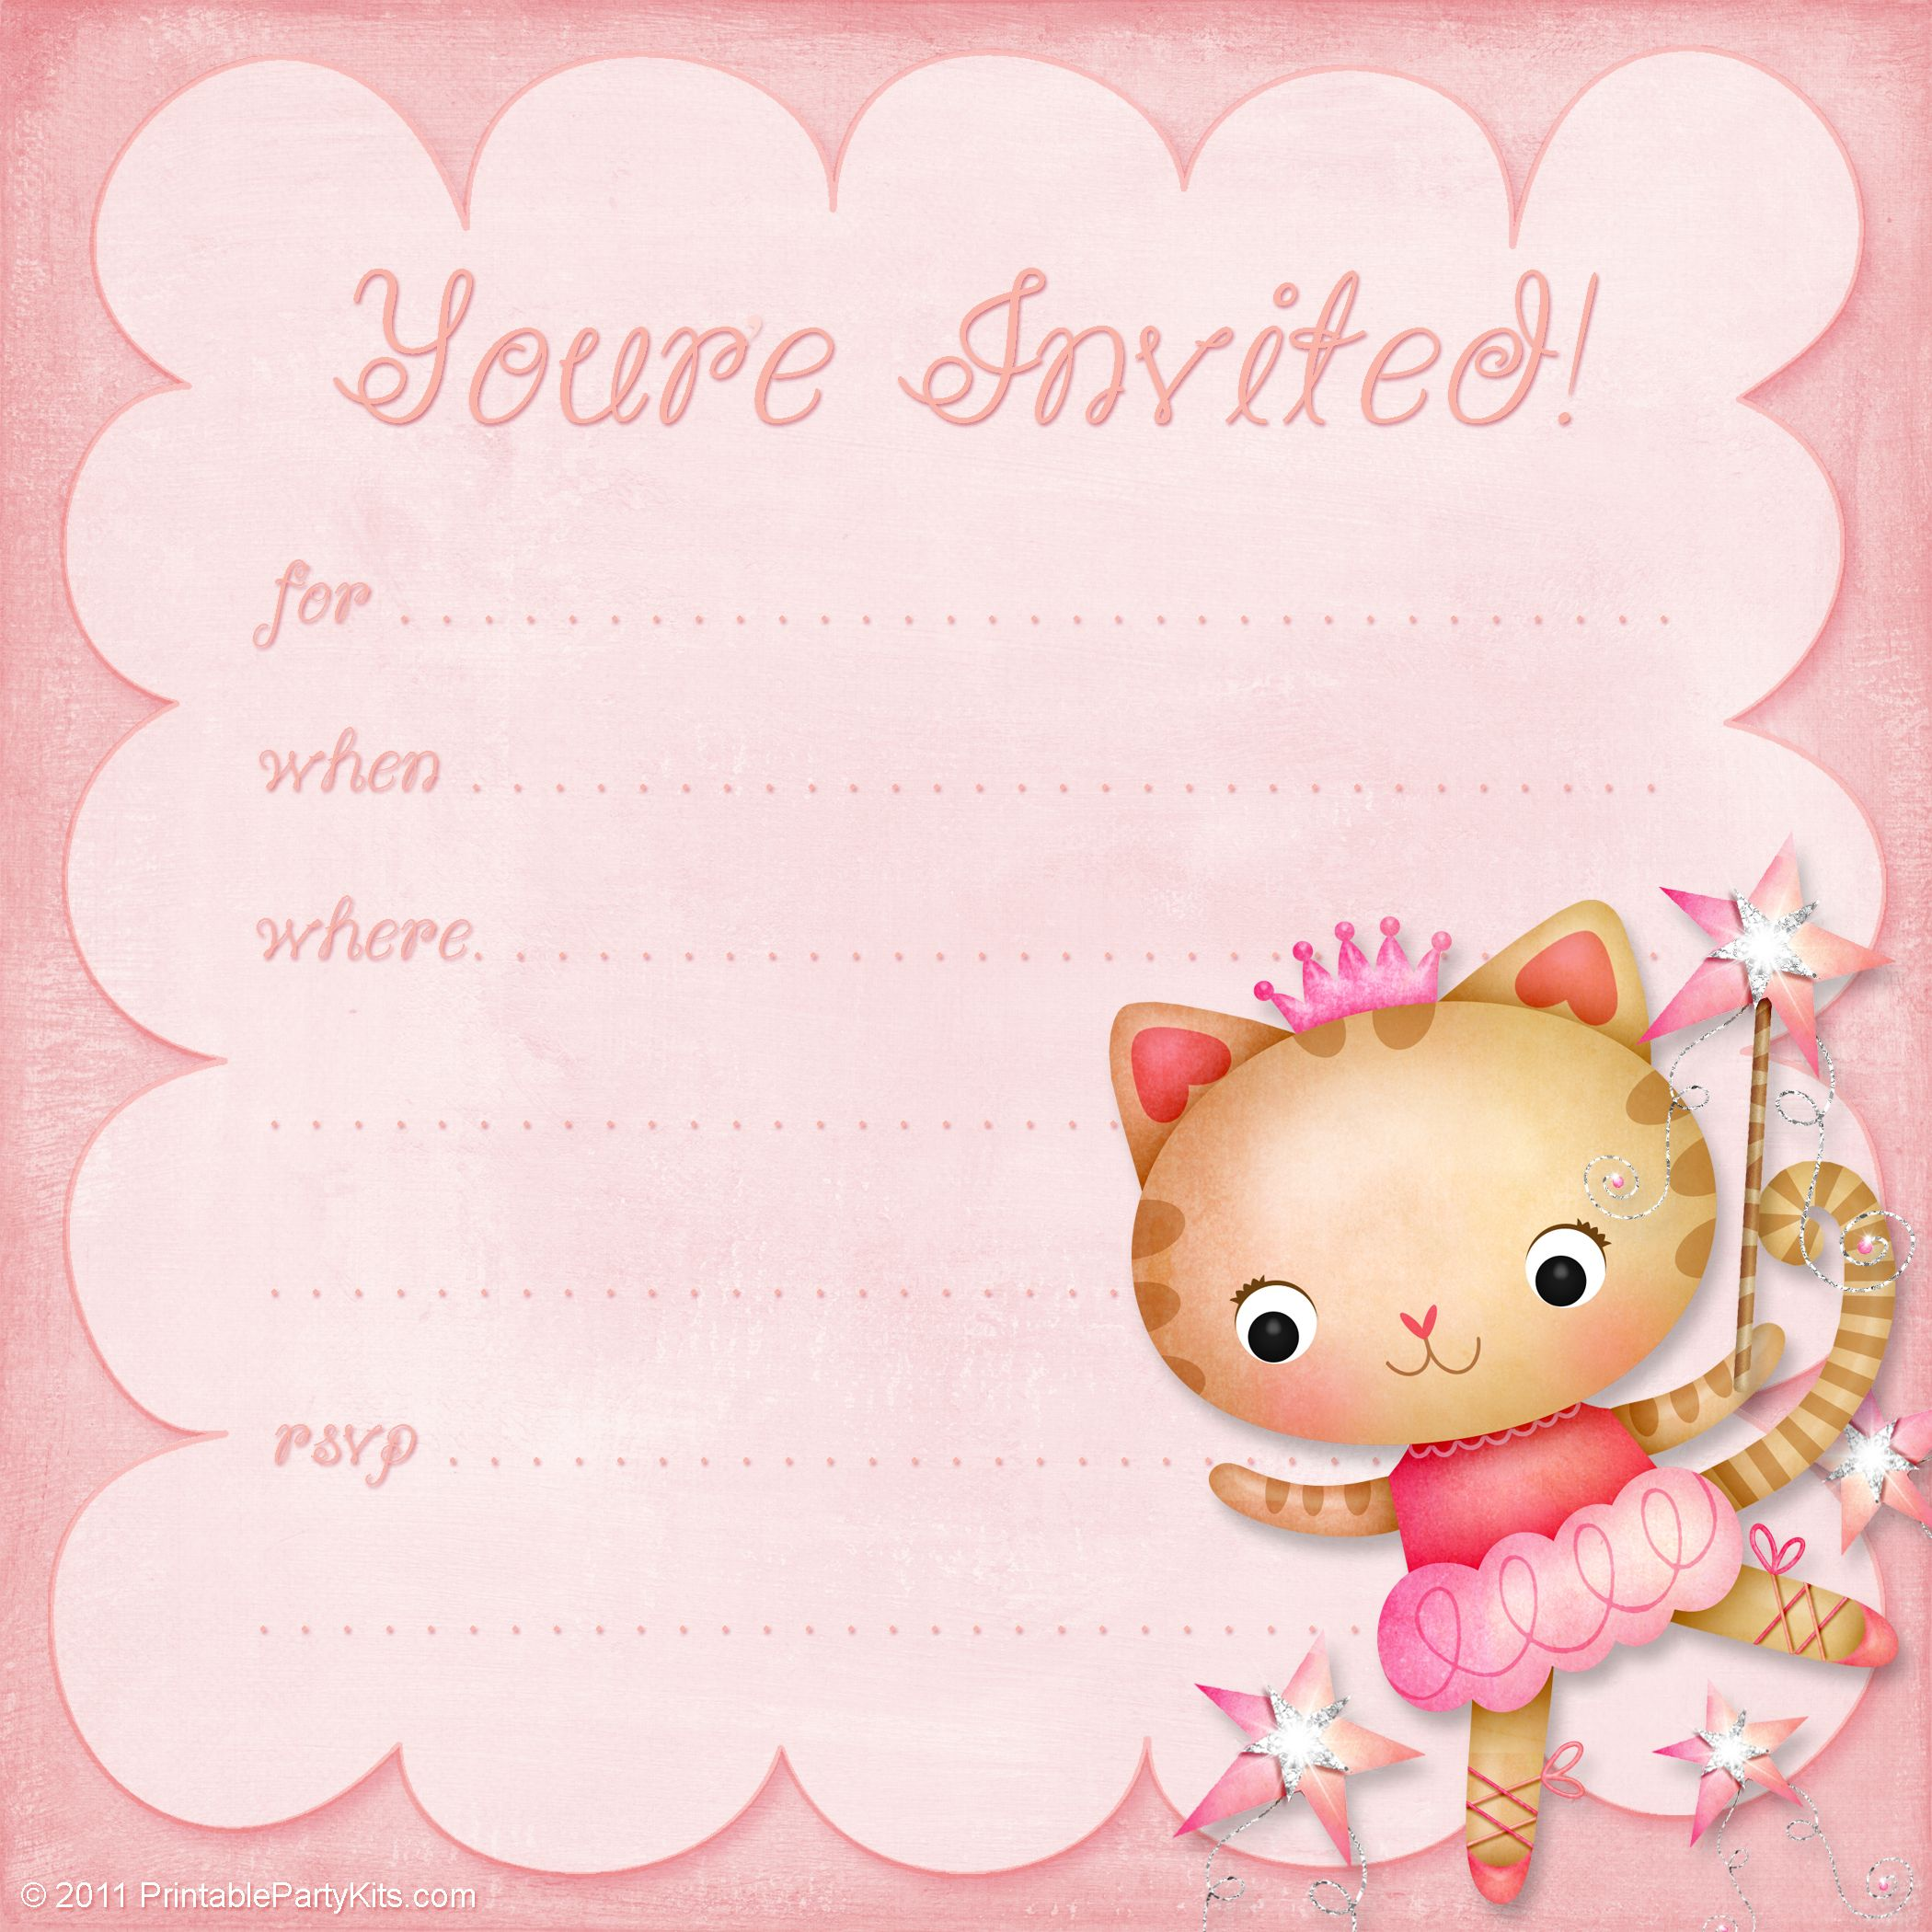 birthday party invitation template birthday party birthday party invitation template birthday party invitation princess ballerina